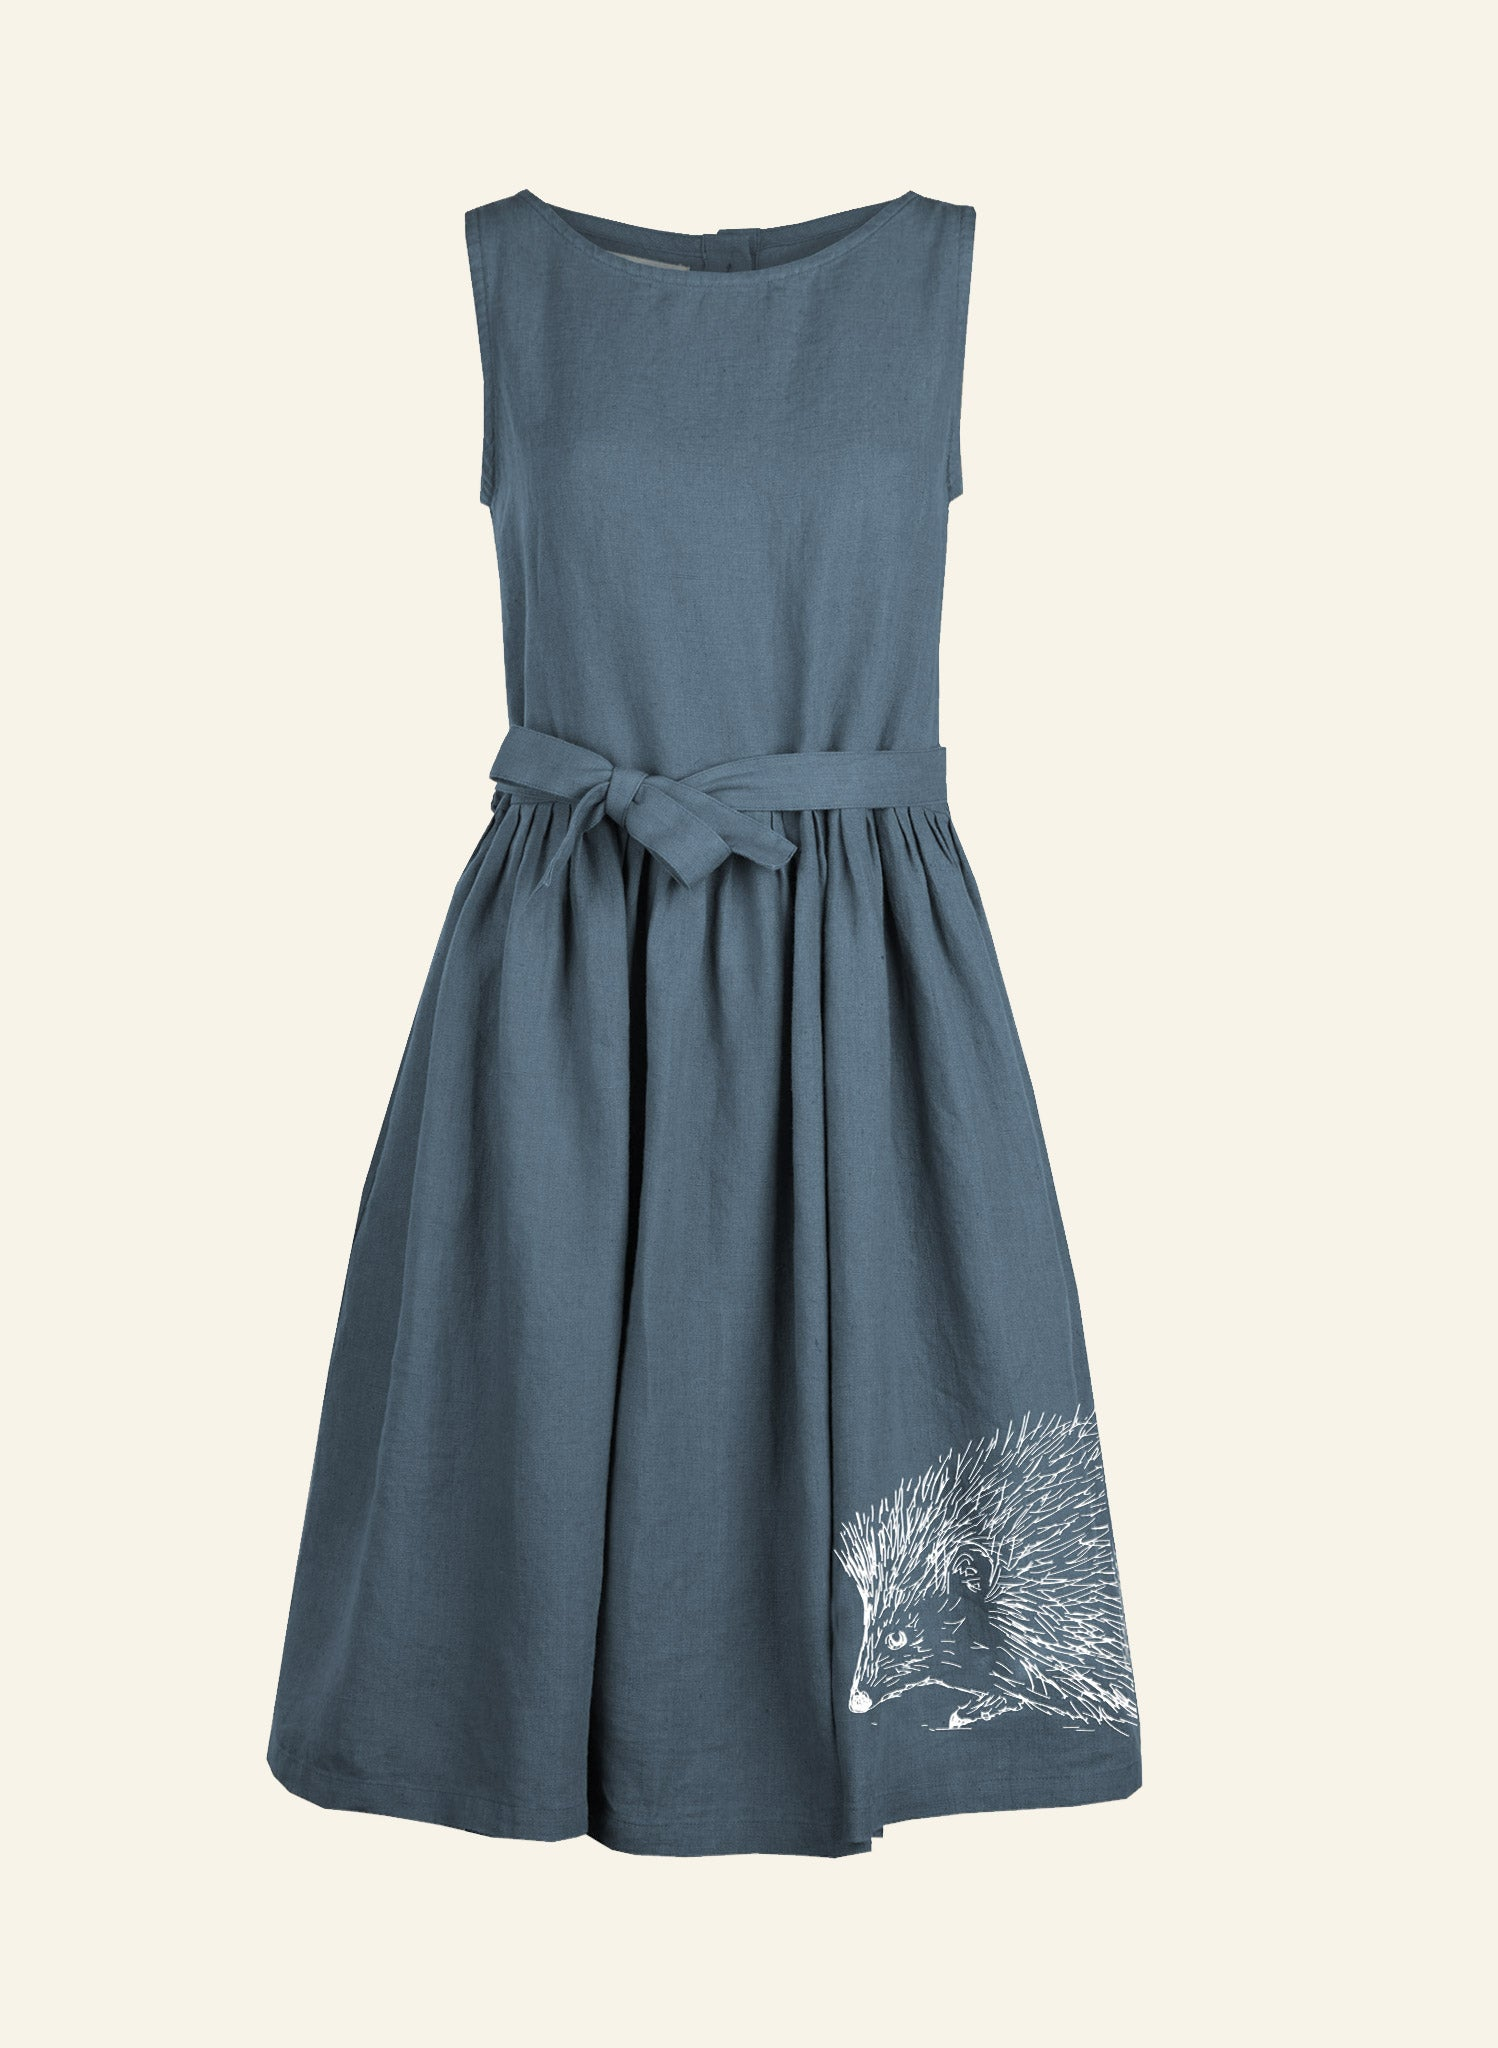 Mabel - Blue Hedgehog Dress - 100% Linen